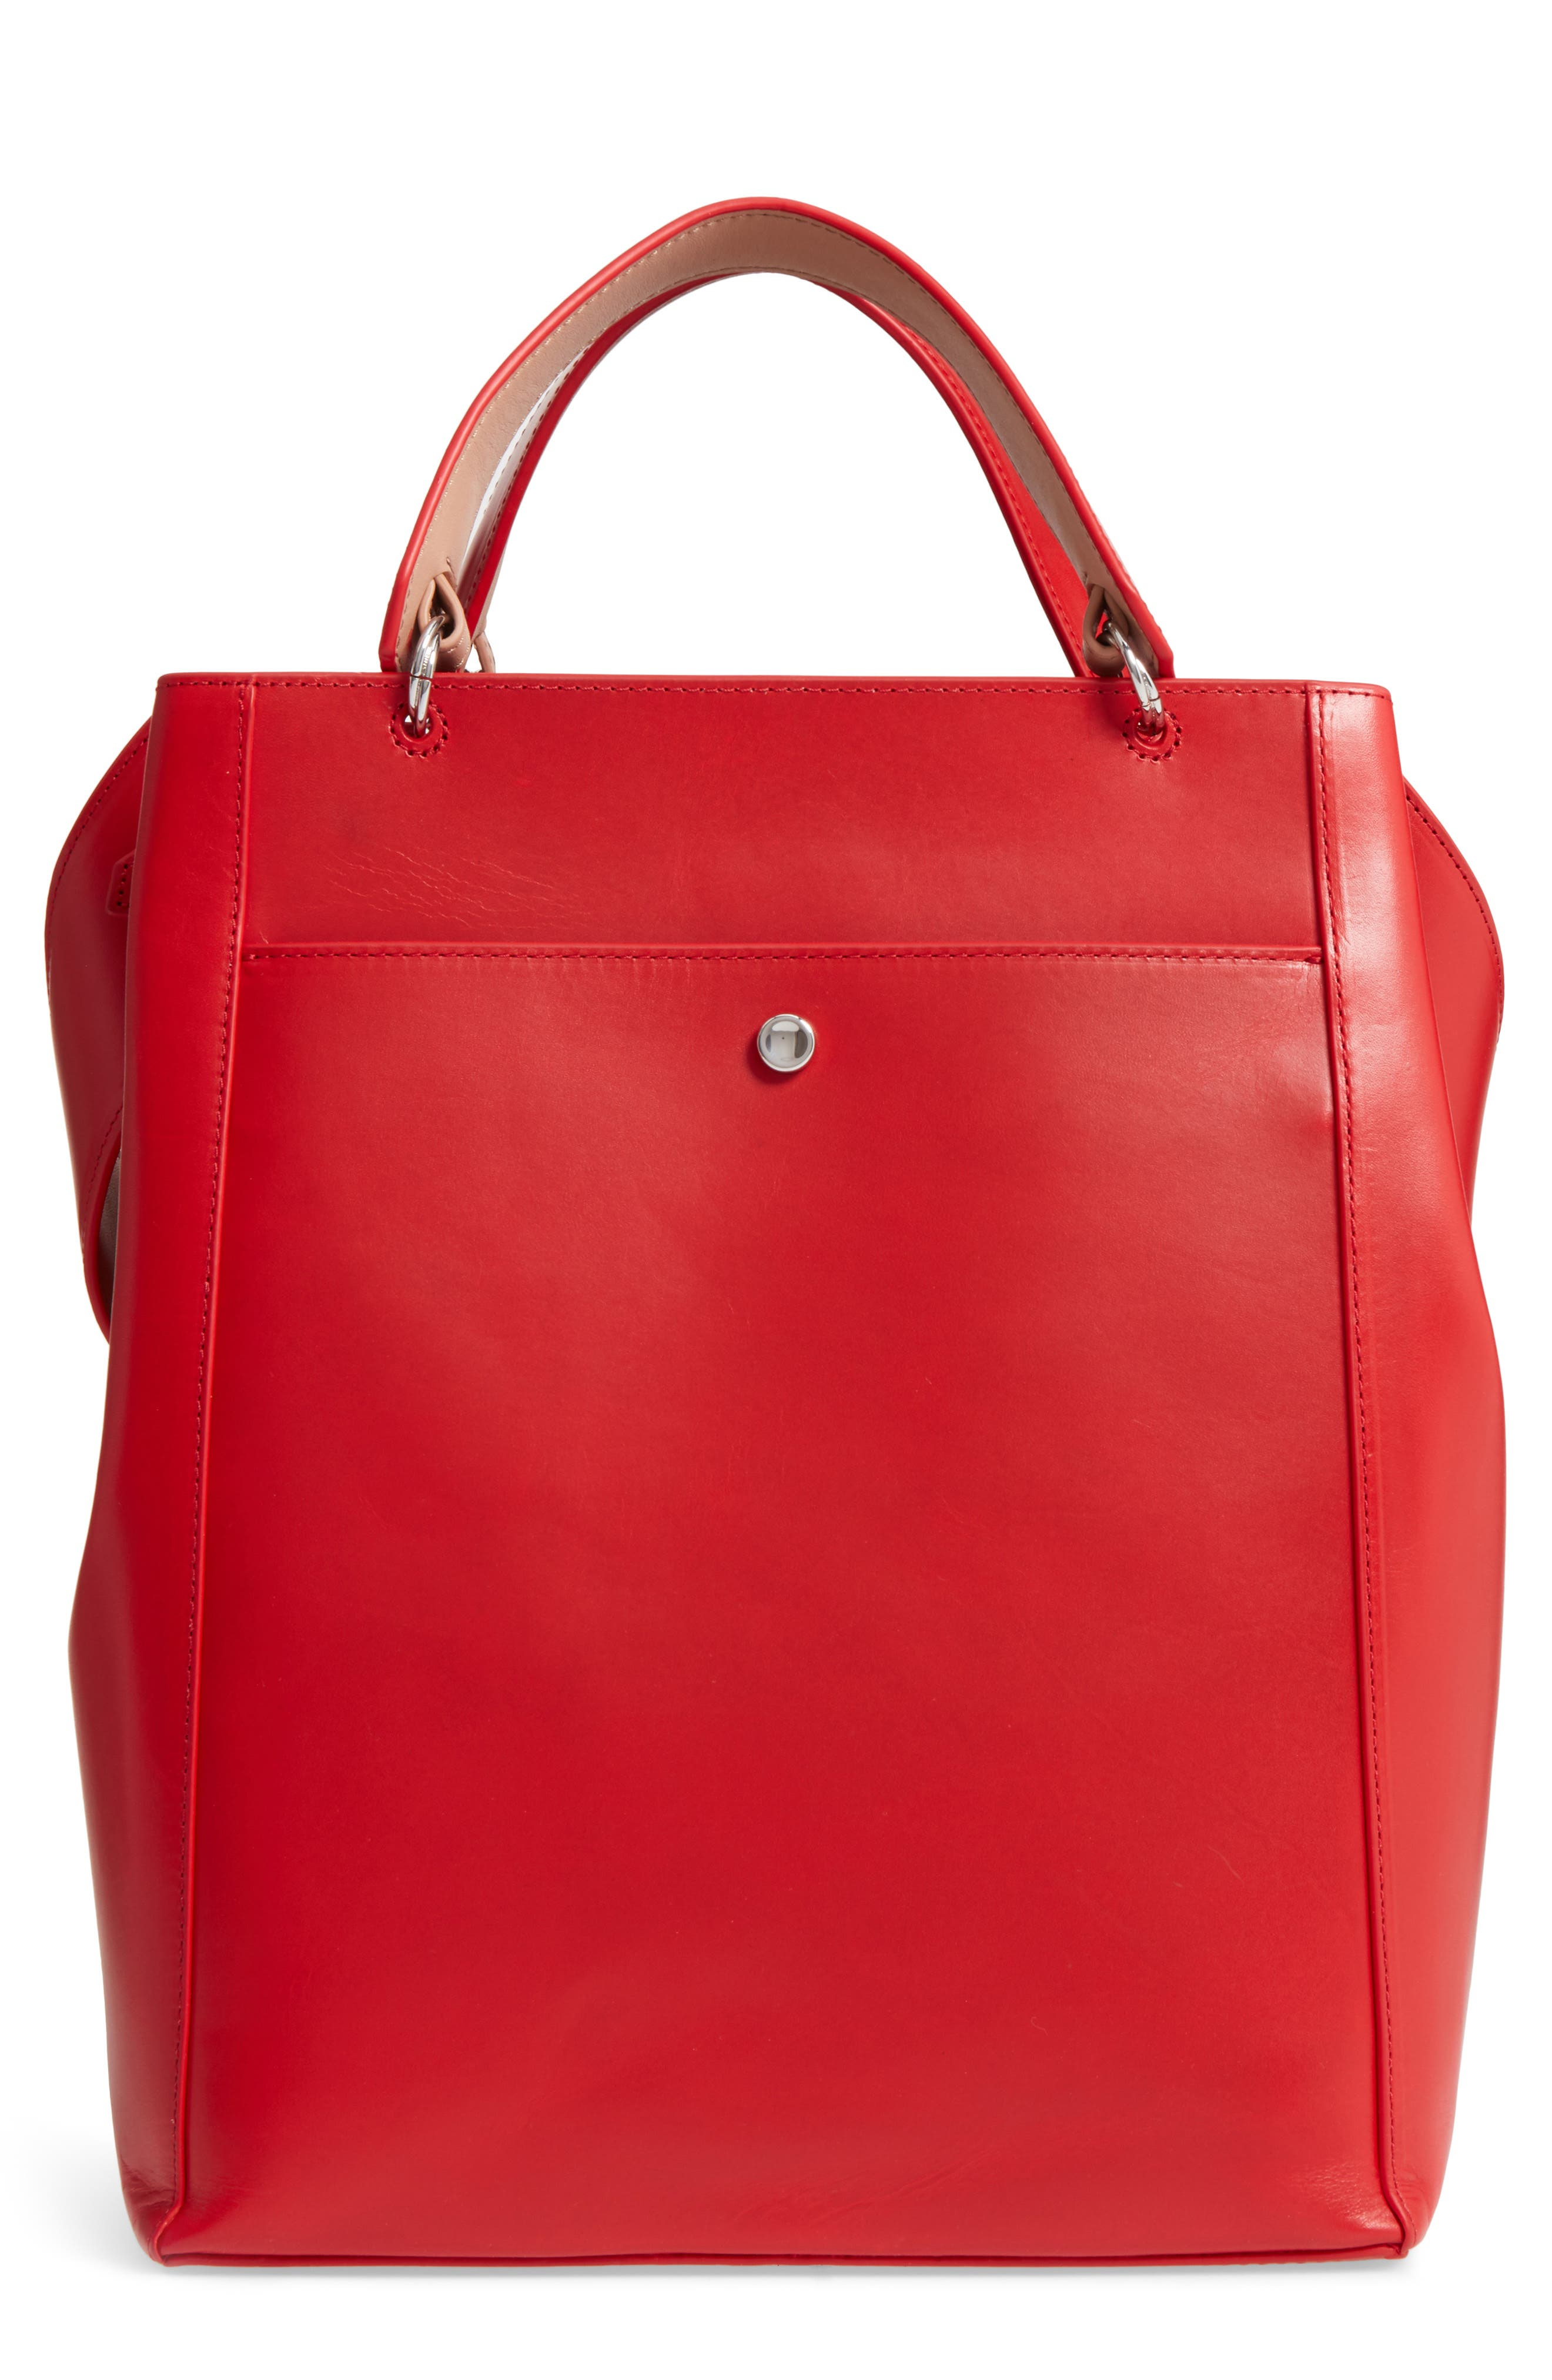 Alternate Image 1 Selected - Elizabeth and James Large Eloise Leather Tote